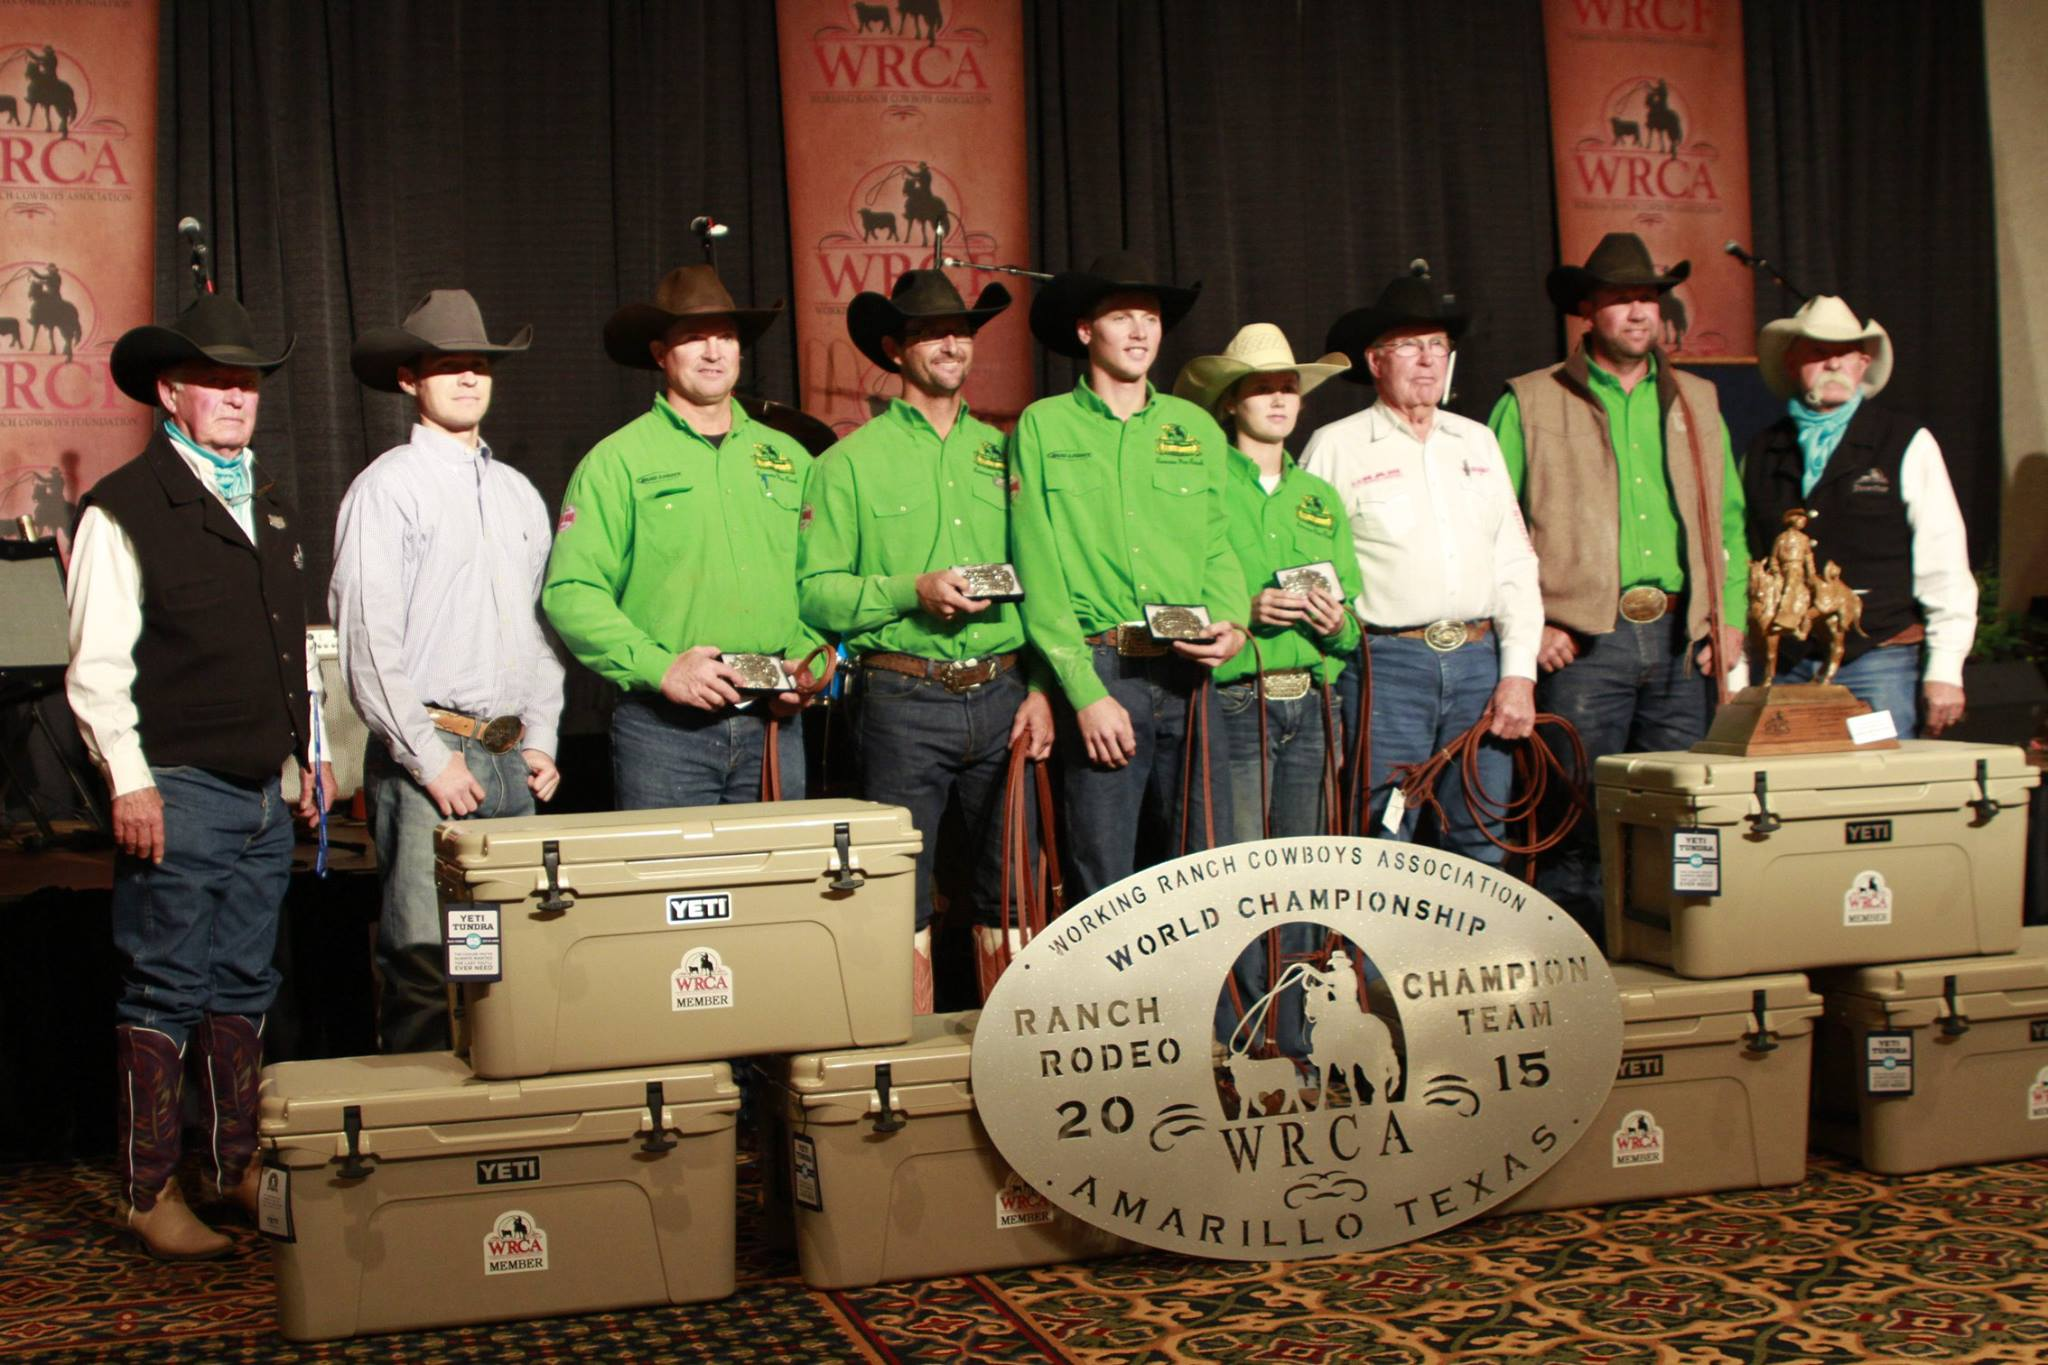 World Champion Ranch Team - Lonesome Pine Ranch